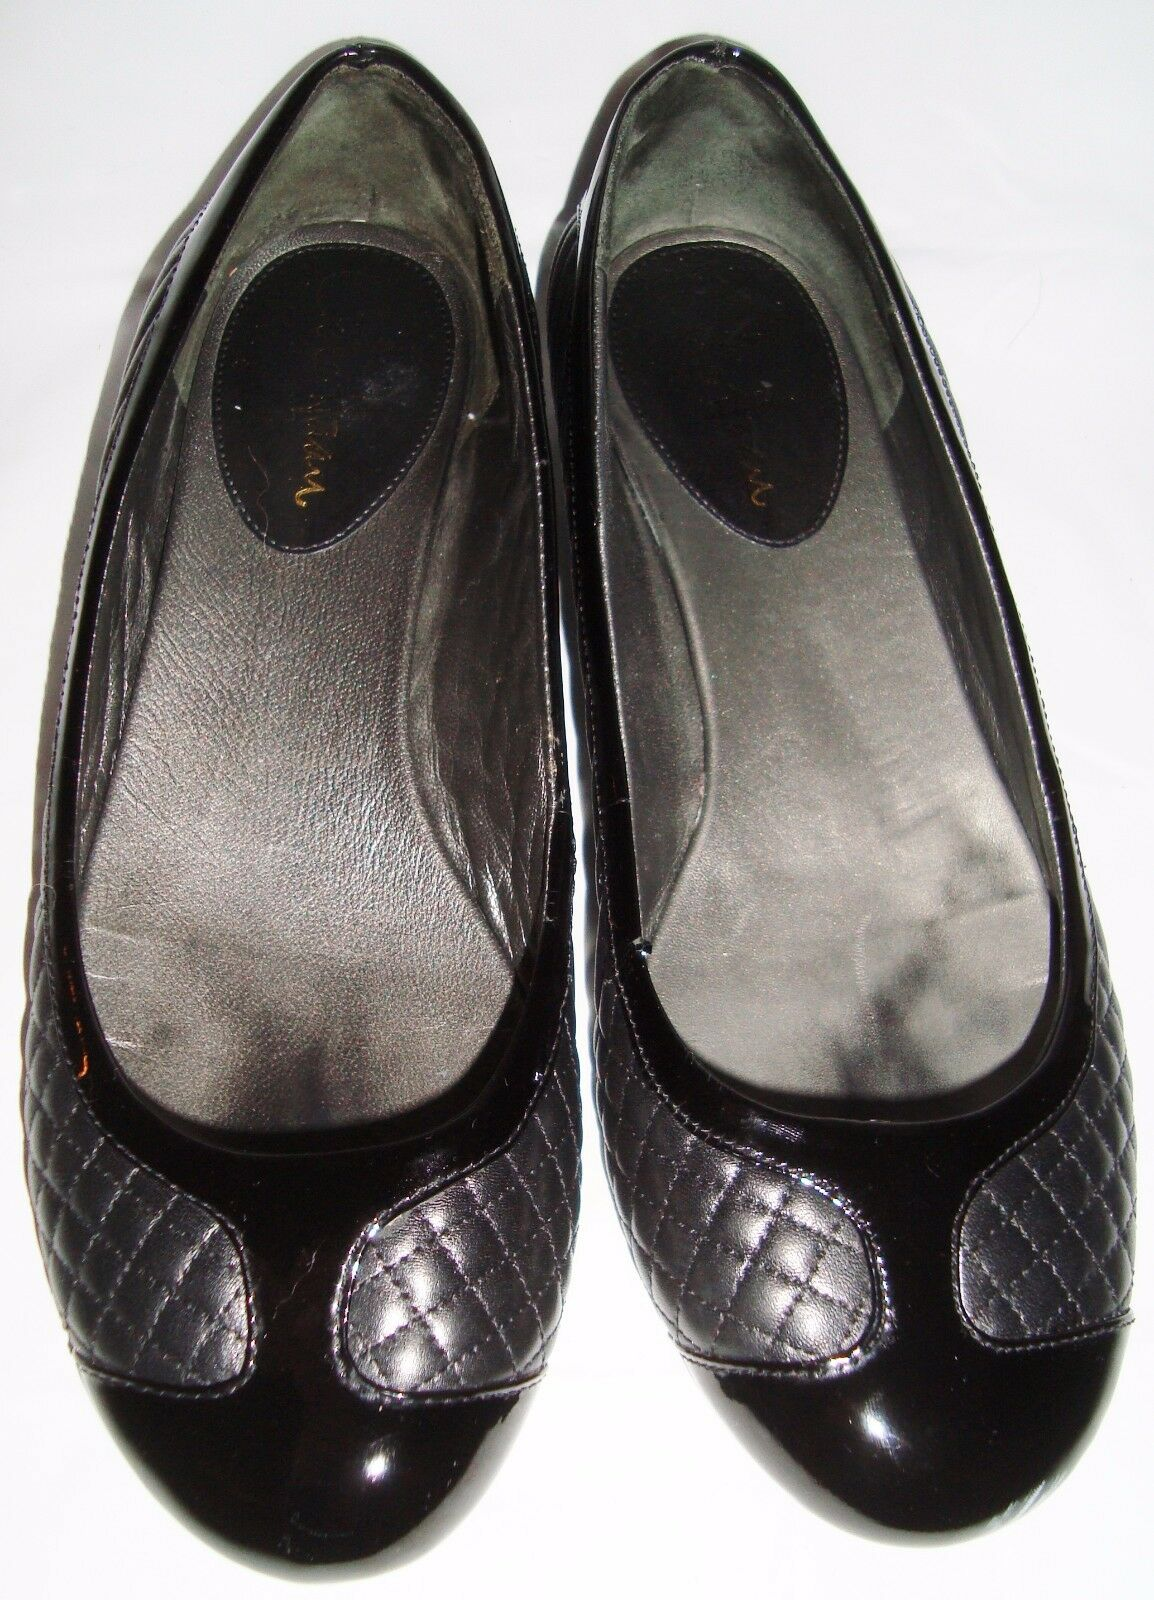 Cole Haan Black Leather Quilted Patent Ballet Flats 7.5 shoes